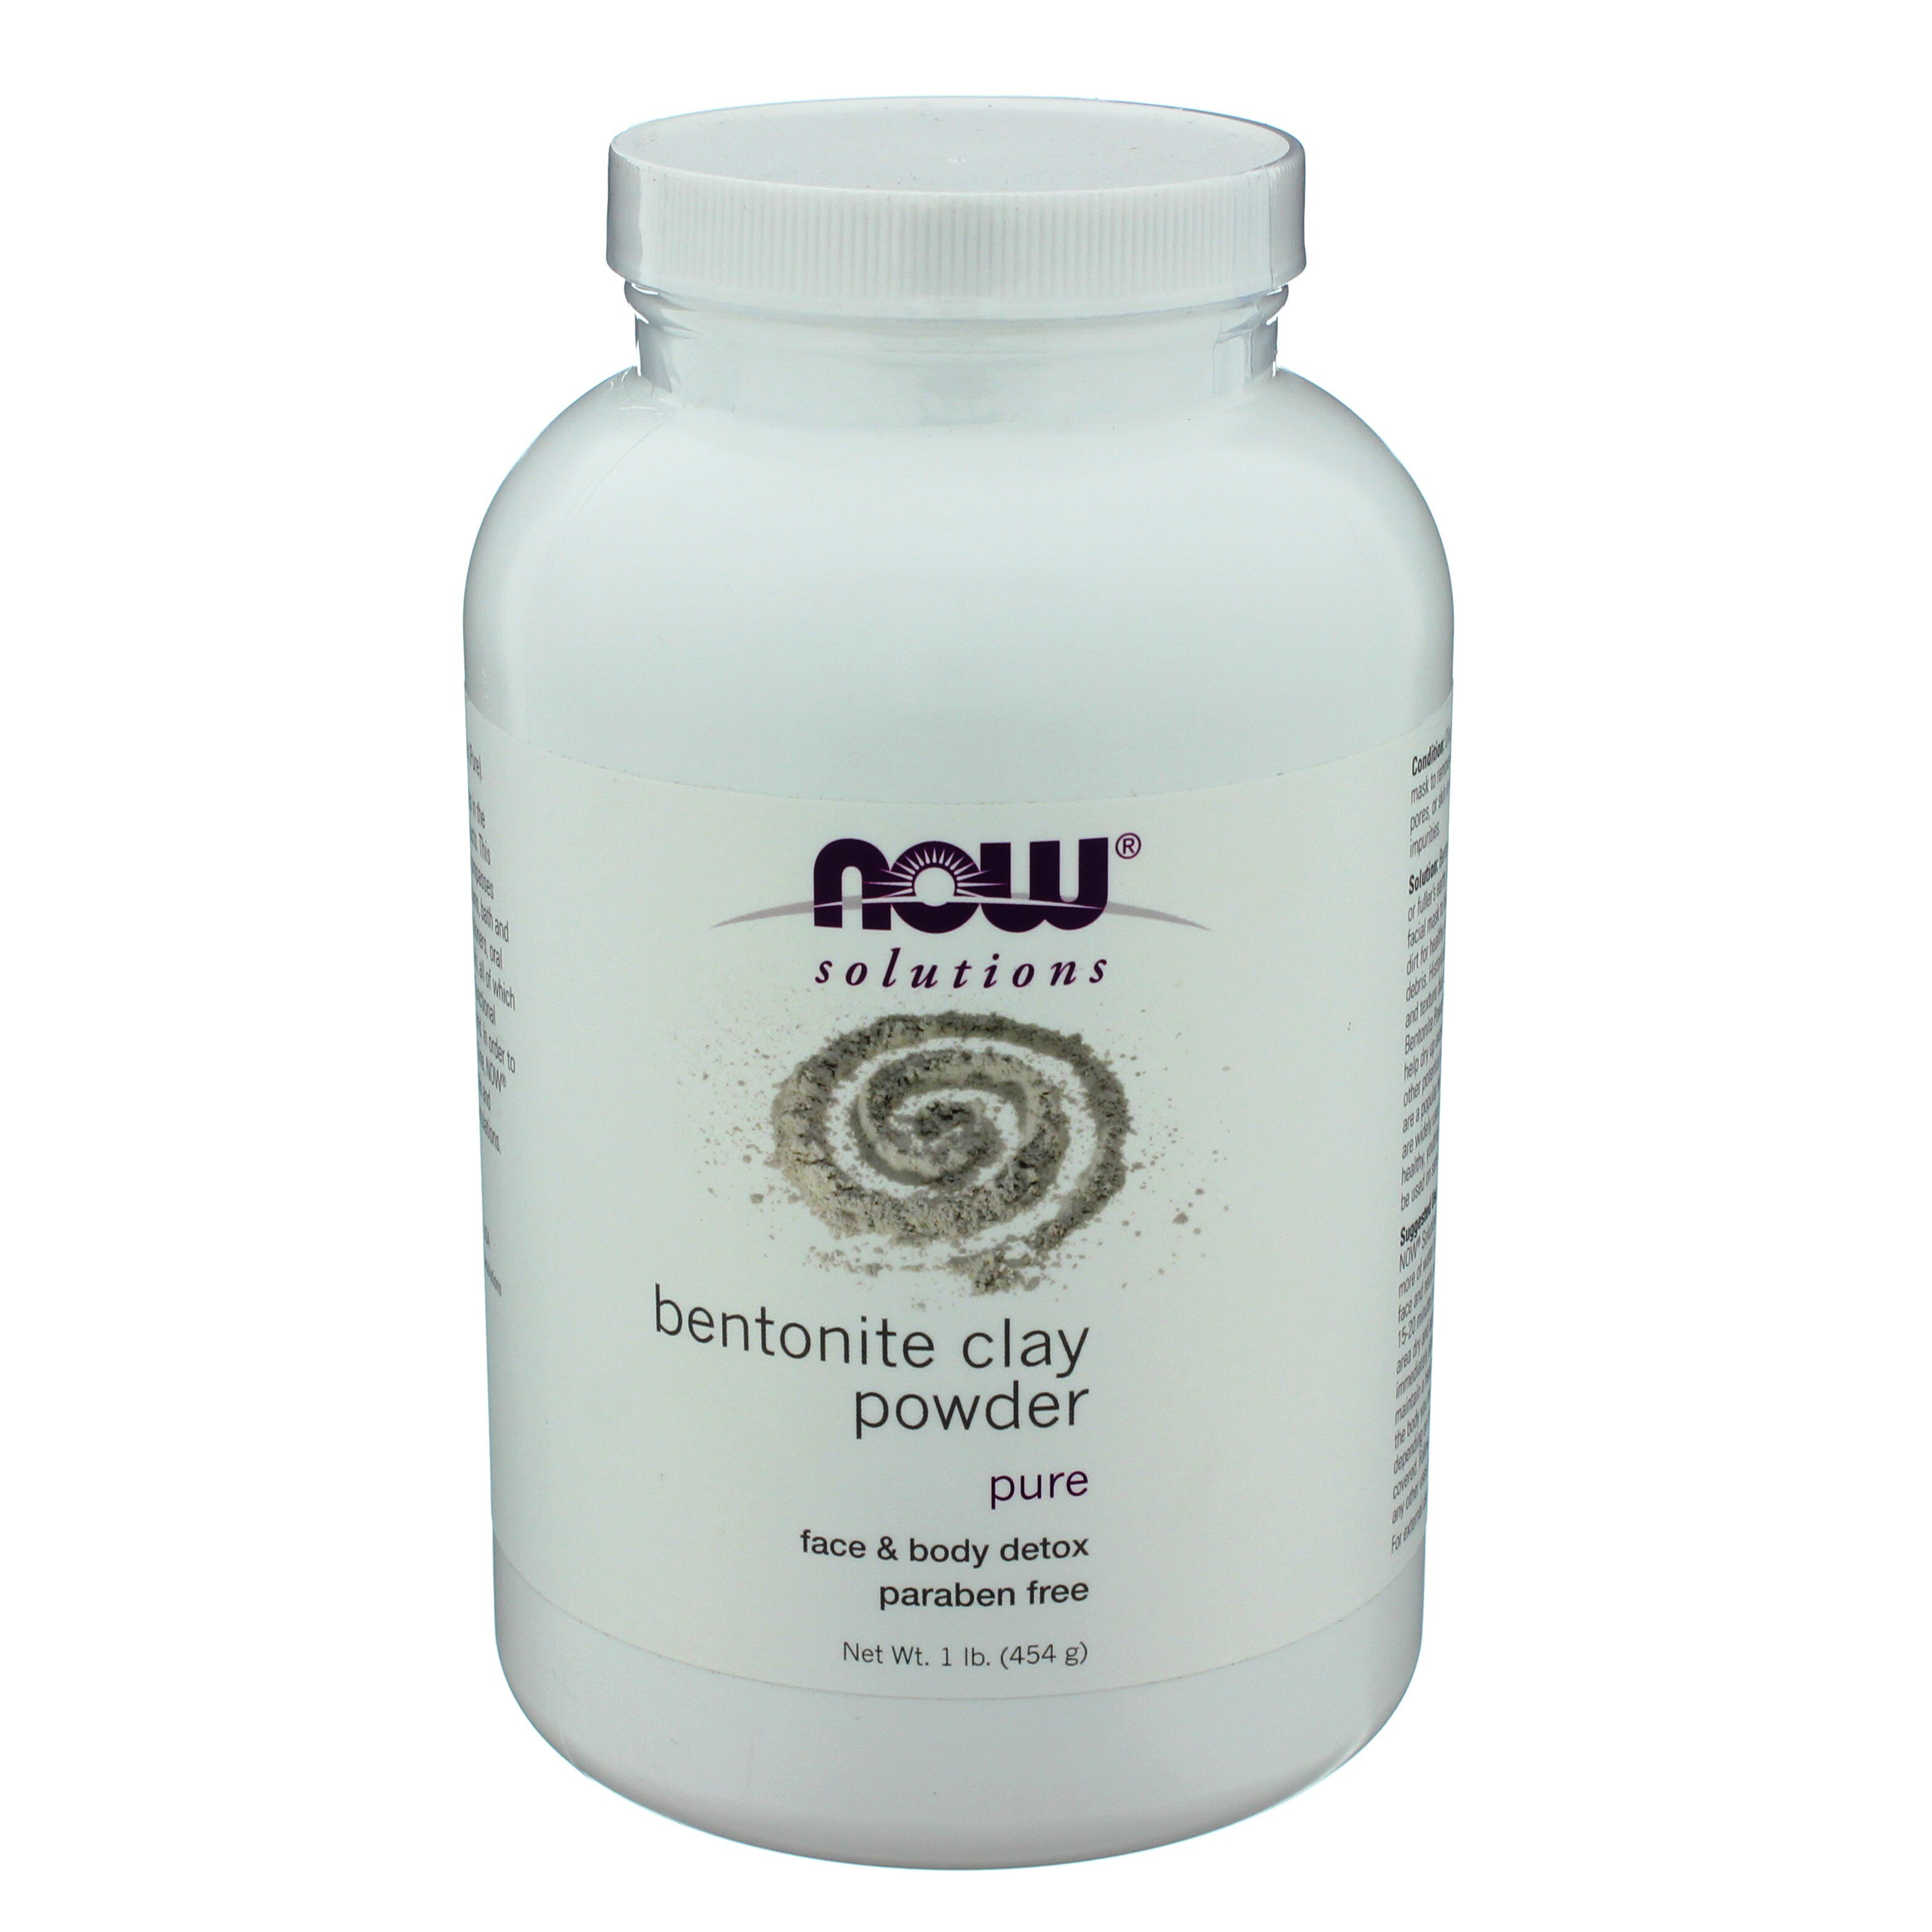 balms and bubble bath shop heb everyday low prices online now solutions bentonite clay powder